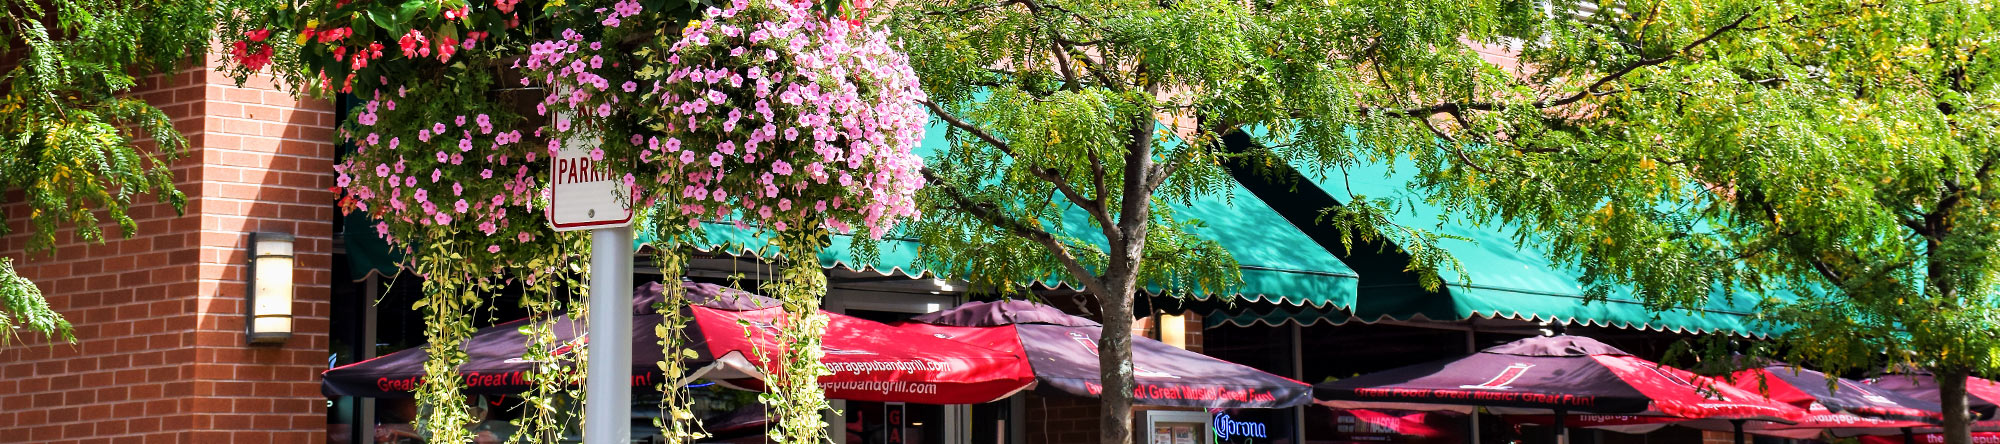 flowers and table umbrellas on fourth street, columbus, indiana